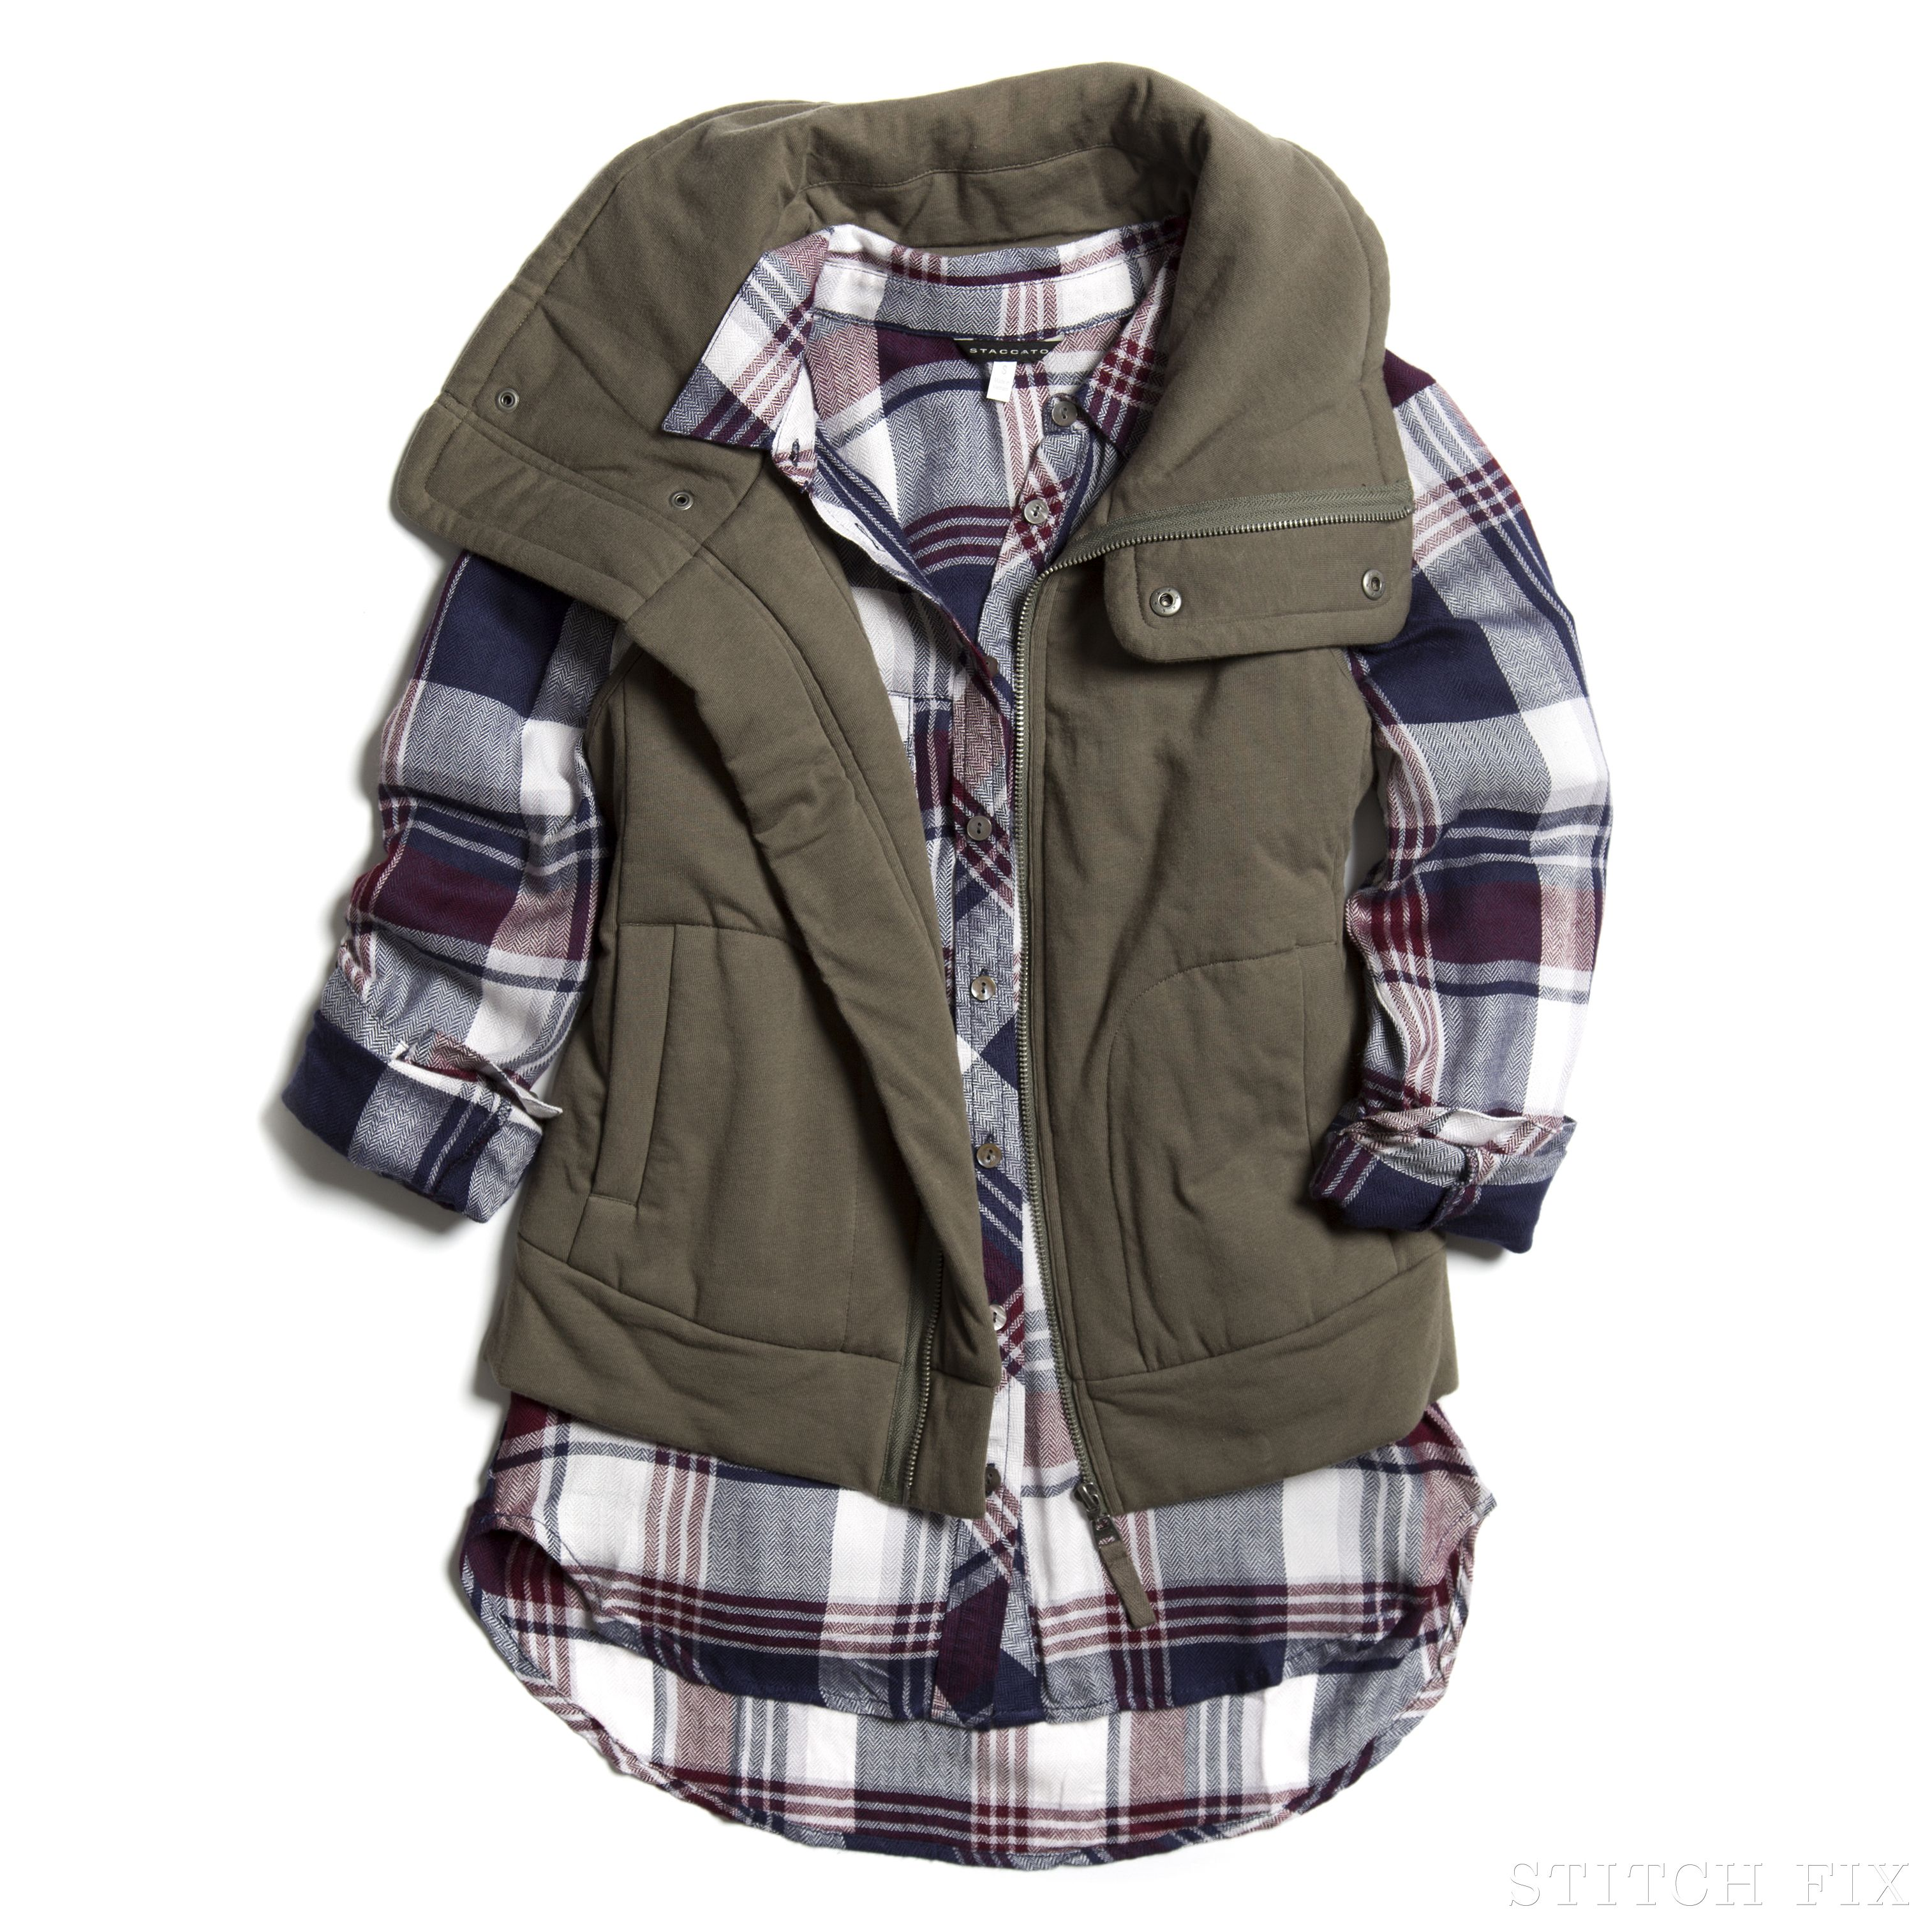 Dress up flannel shirt  I love the plaid with a vest look A lot of people at work are